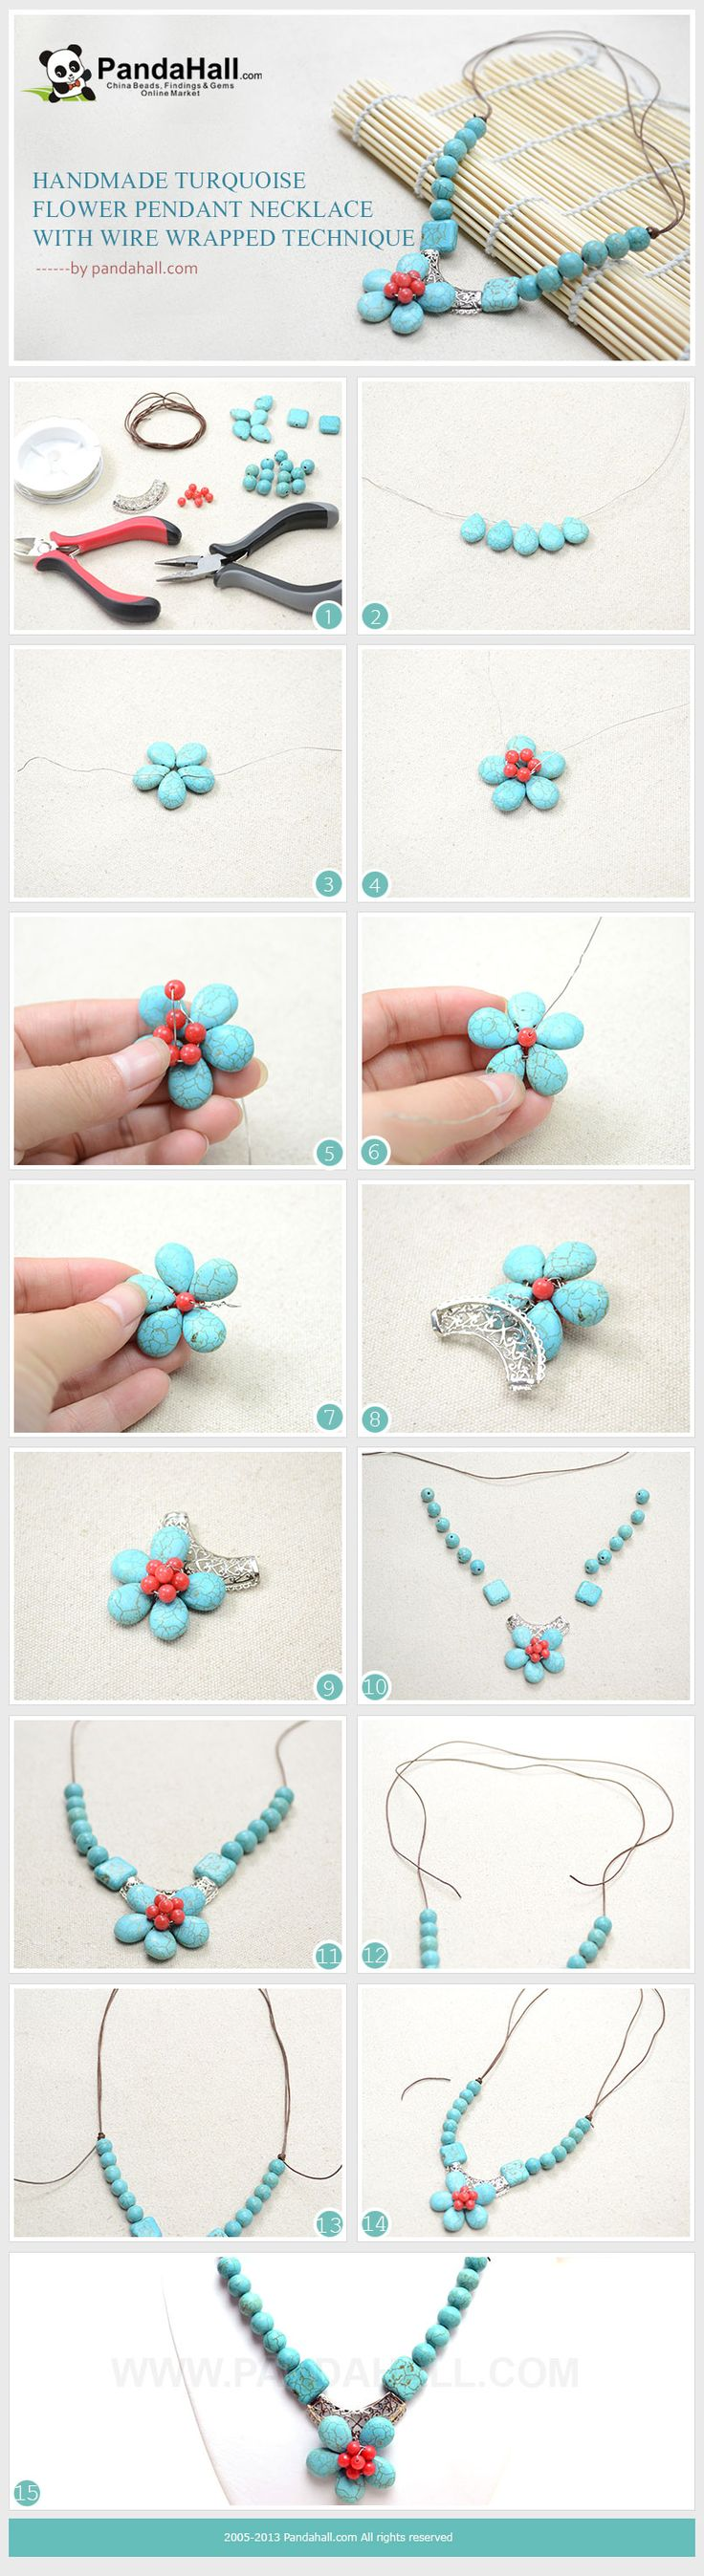 Handmade Turquoise Flower Pendant Necklace with Wire Wrapped Technique